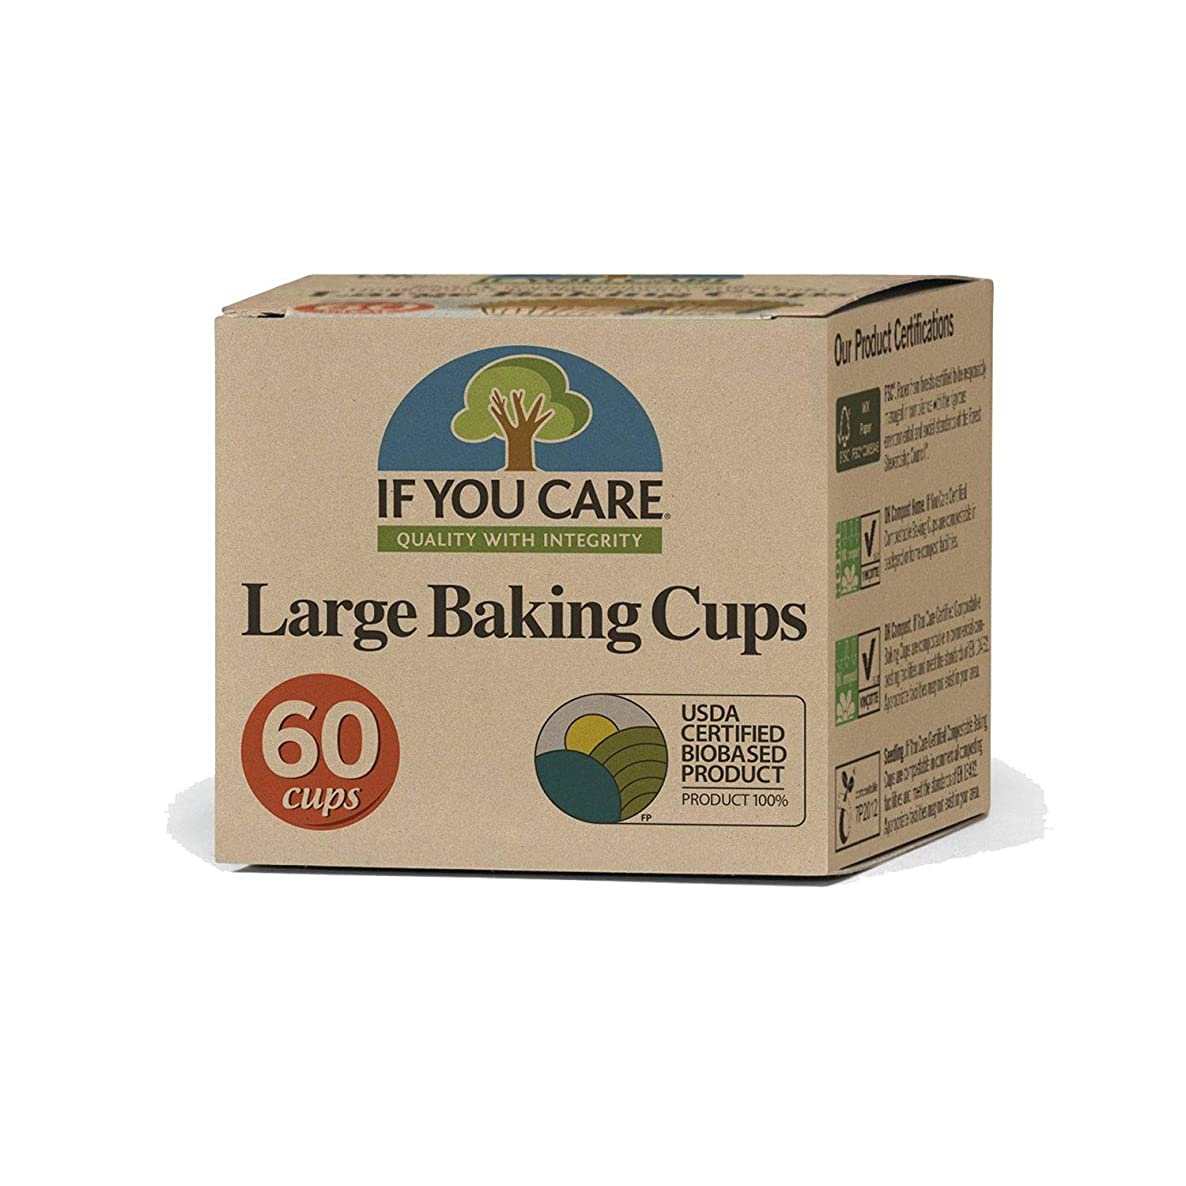 If You Care Fsc Certified Unbleached Large Baking Cups - 60 Count